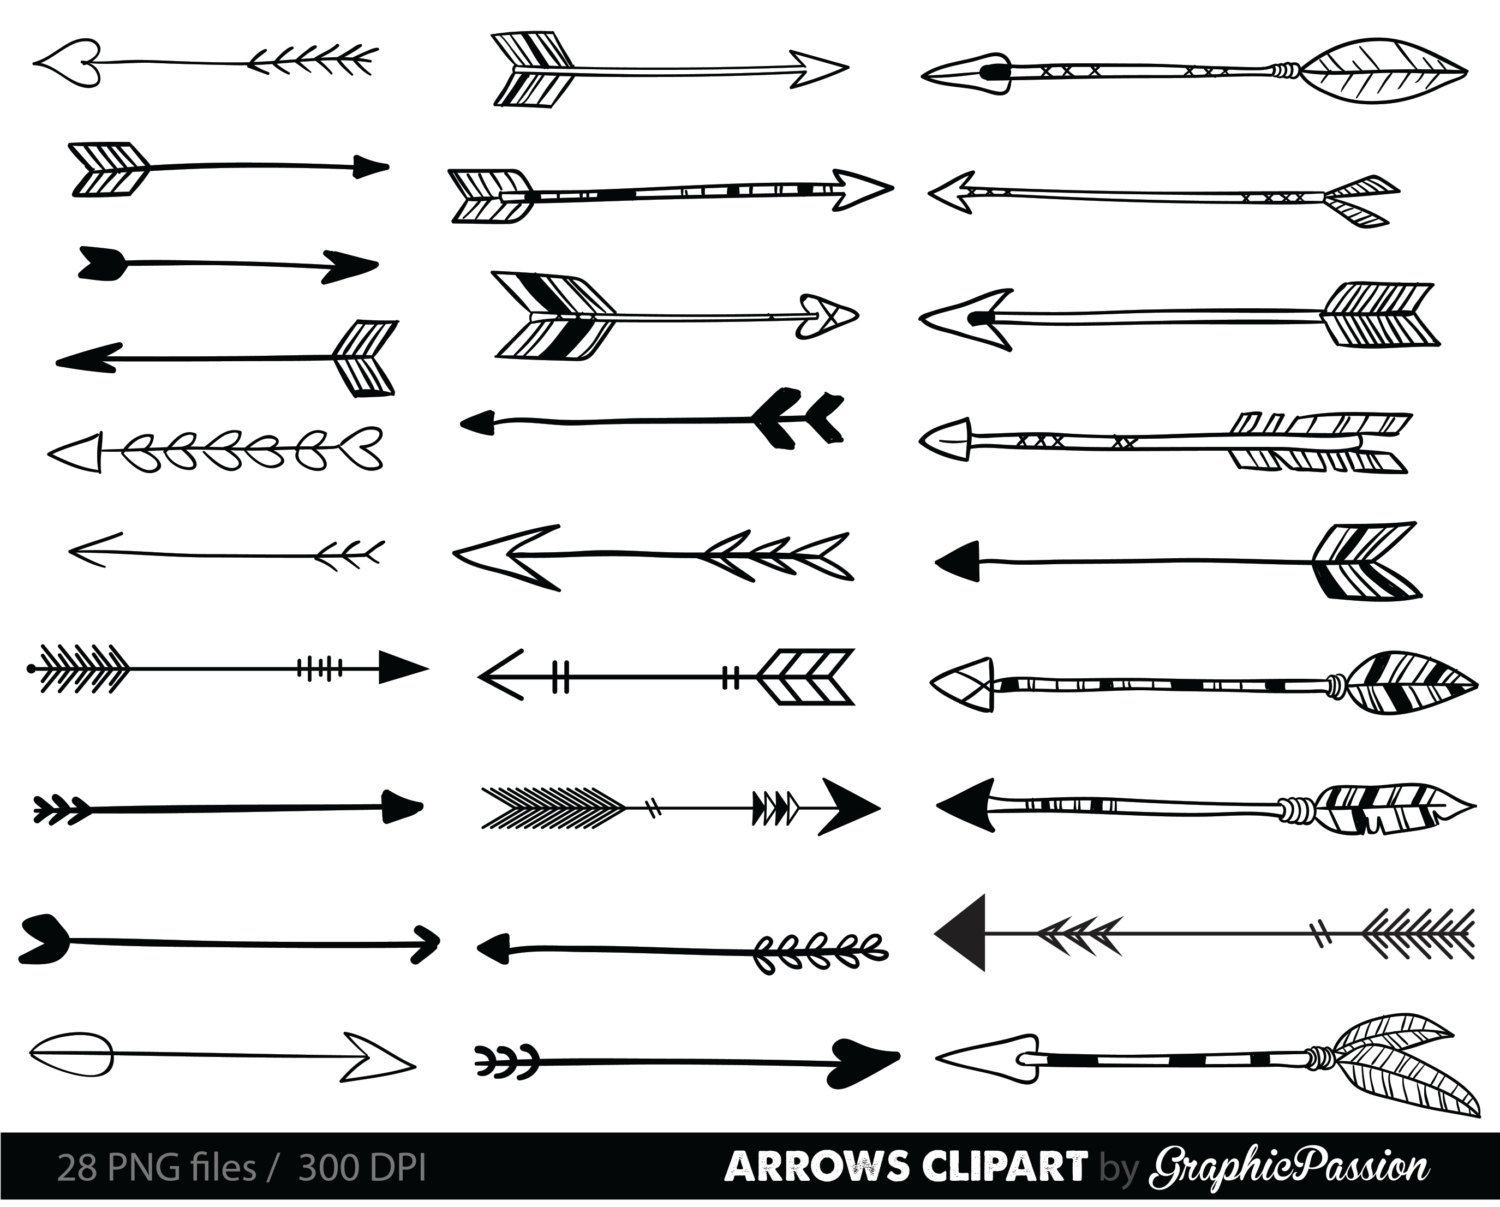 Arrowhead clipart outline. Image result for fun